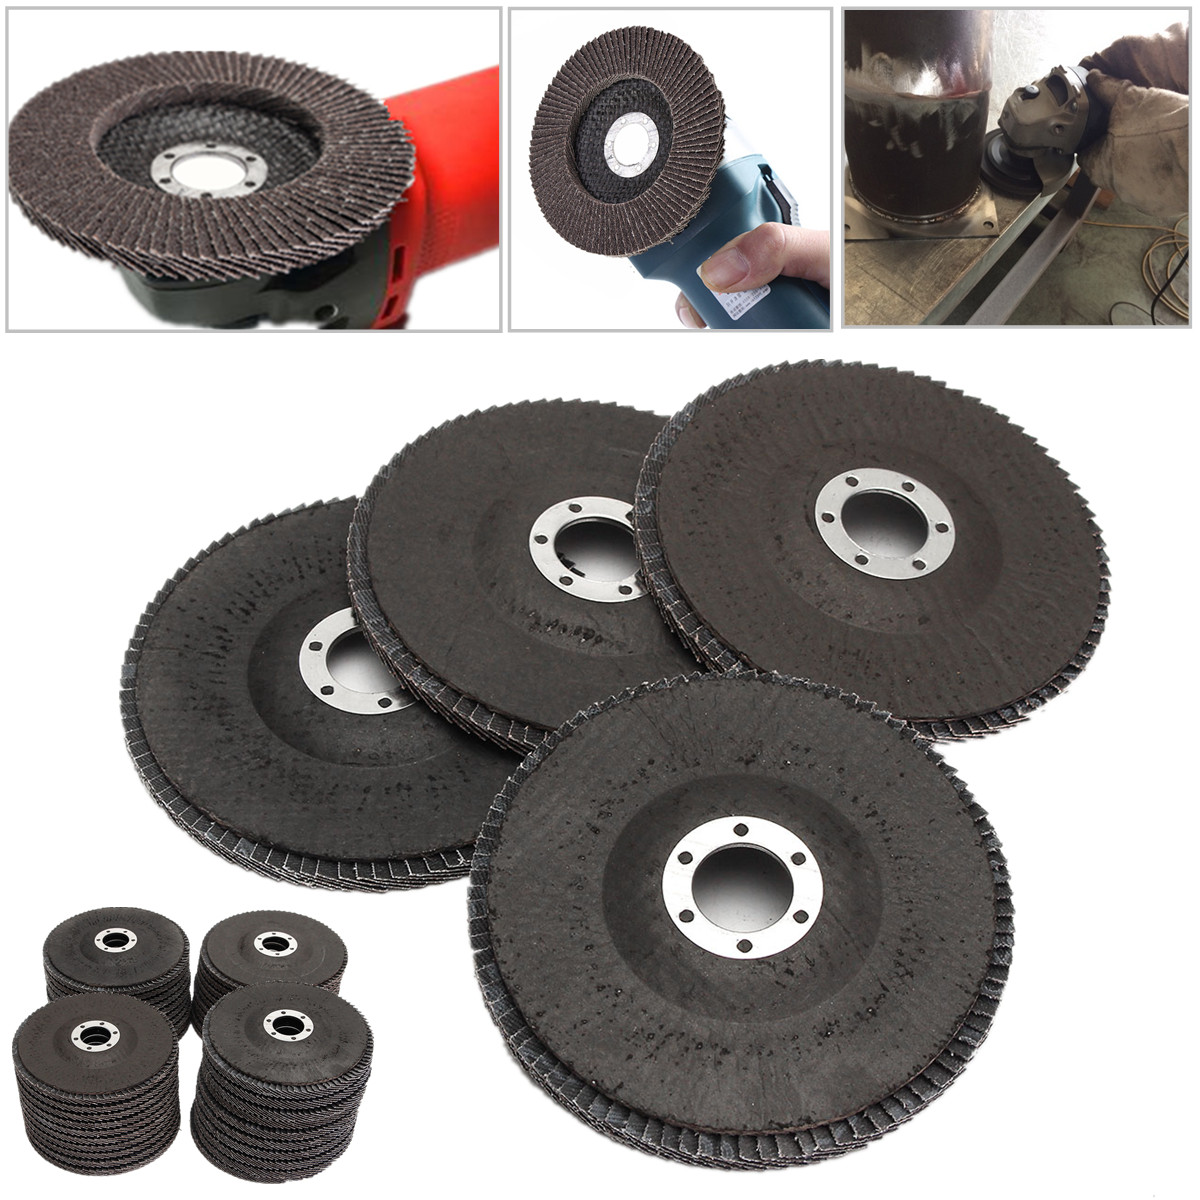 10Pcs 5 125mm 40 60 80 120 Grit Angle Grinder Flap Sanding Disc